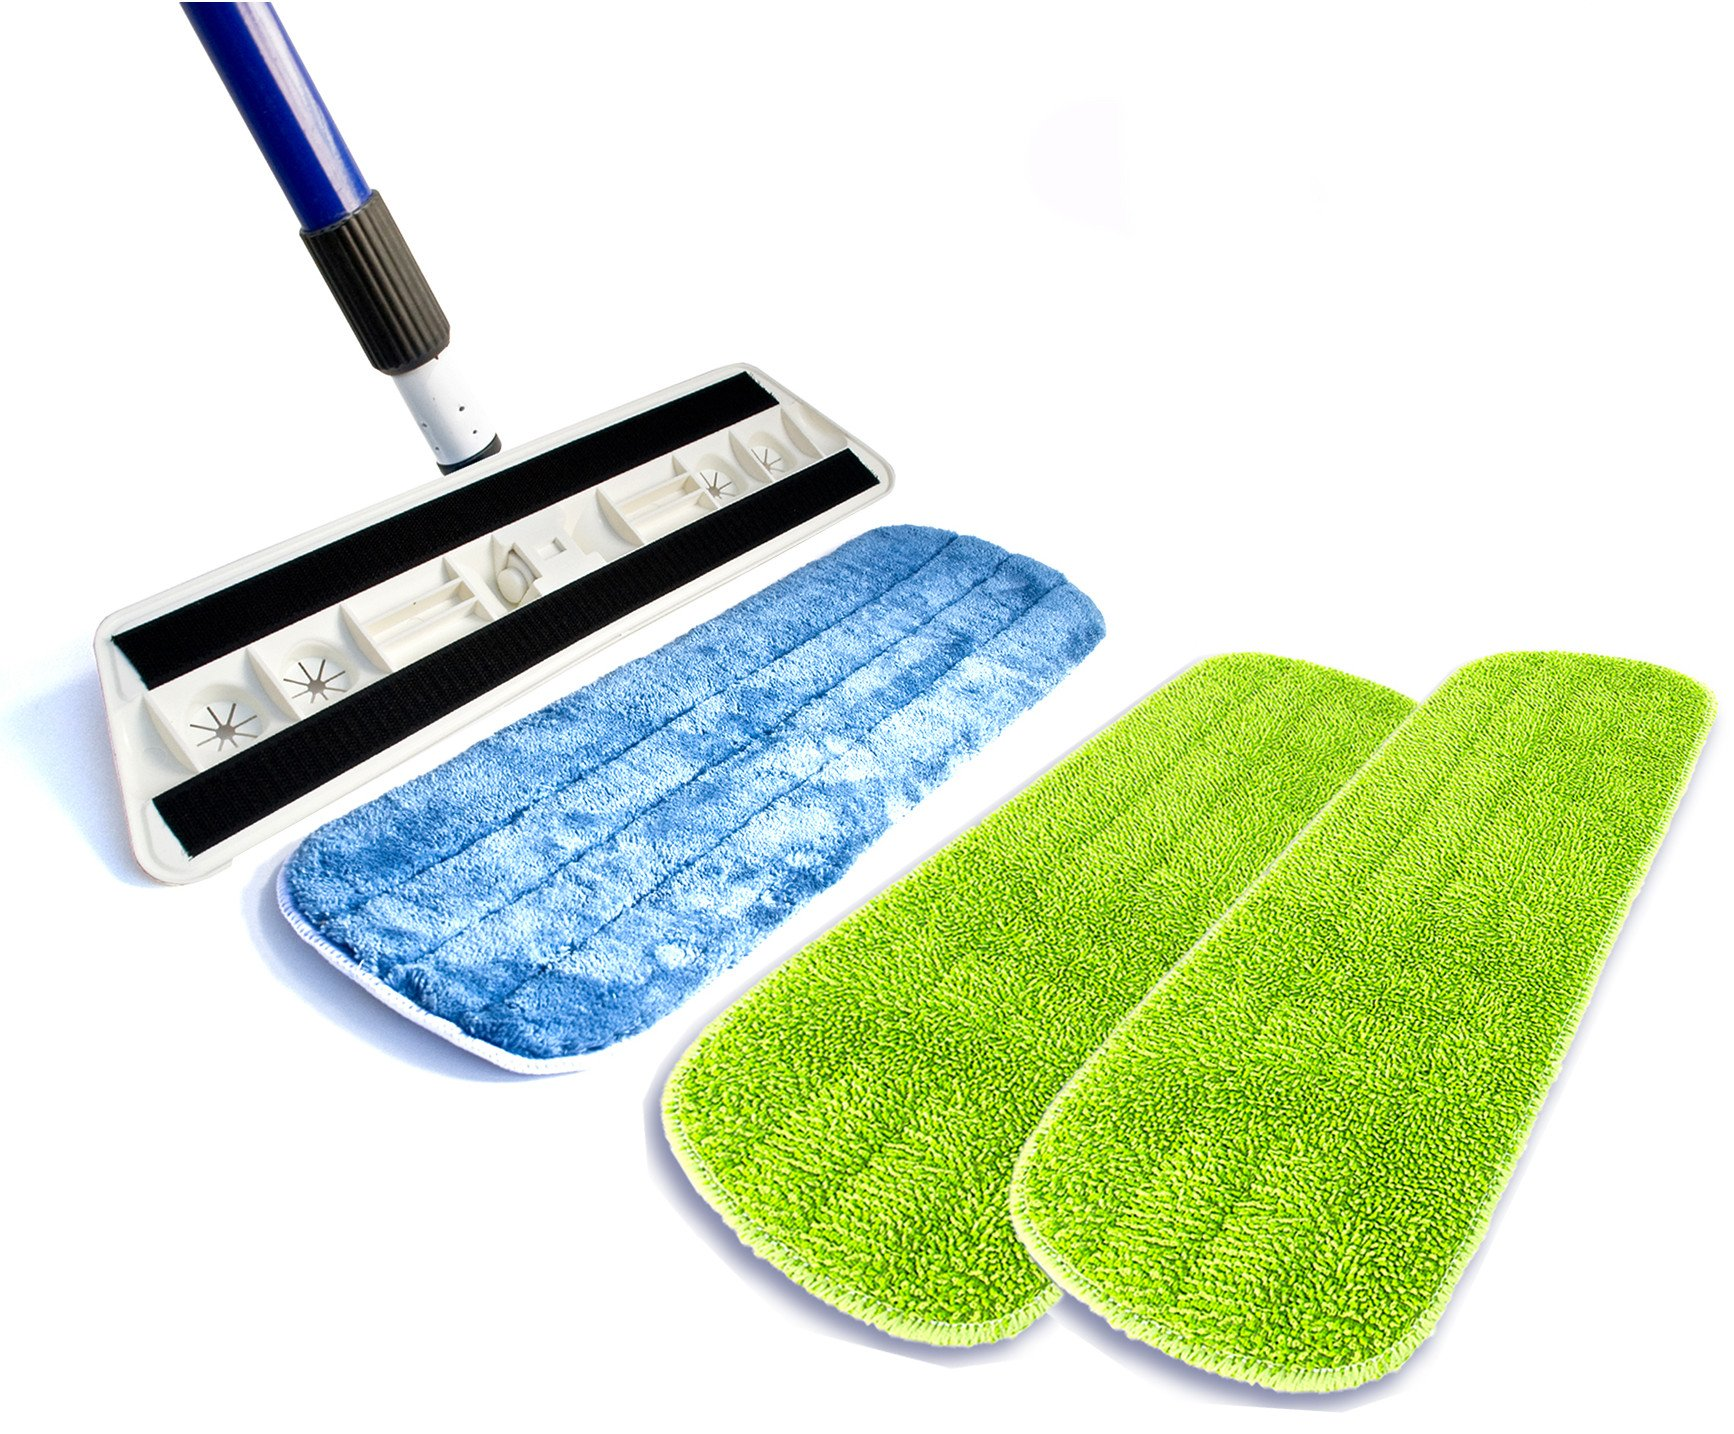 Kitchen + Home Professional Microfiber Mop – 2 Washable Reusable Wet Mop Pads and 1 Bonus Dry Dust Mop Pad Refill Included by Kitchen + Home